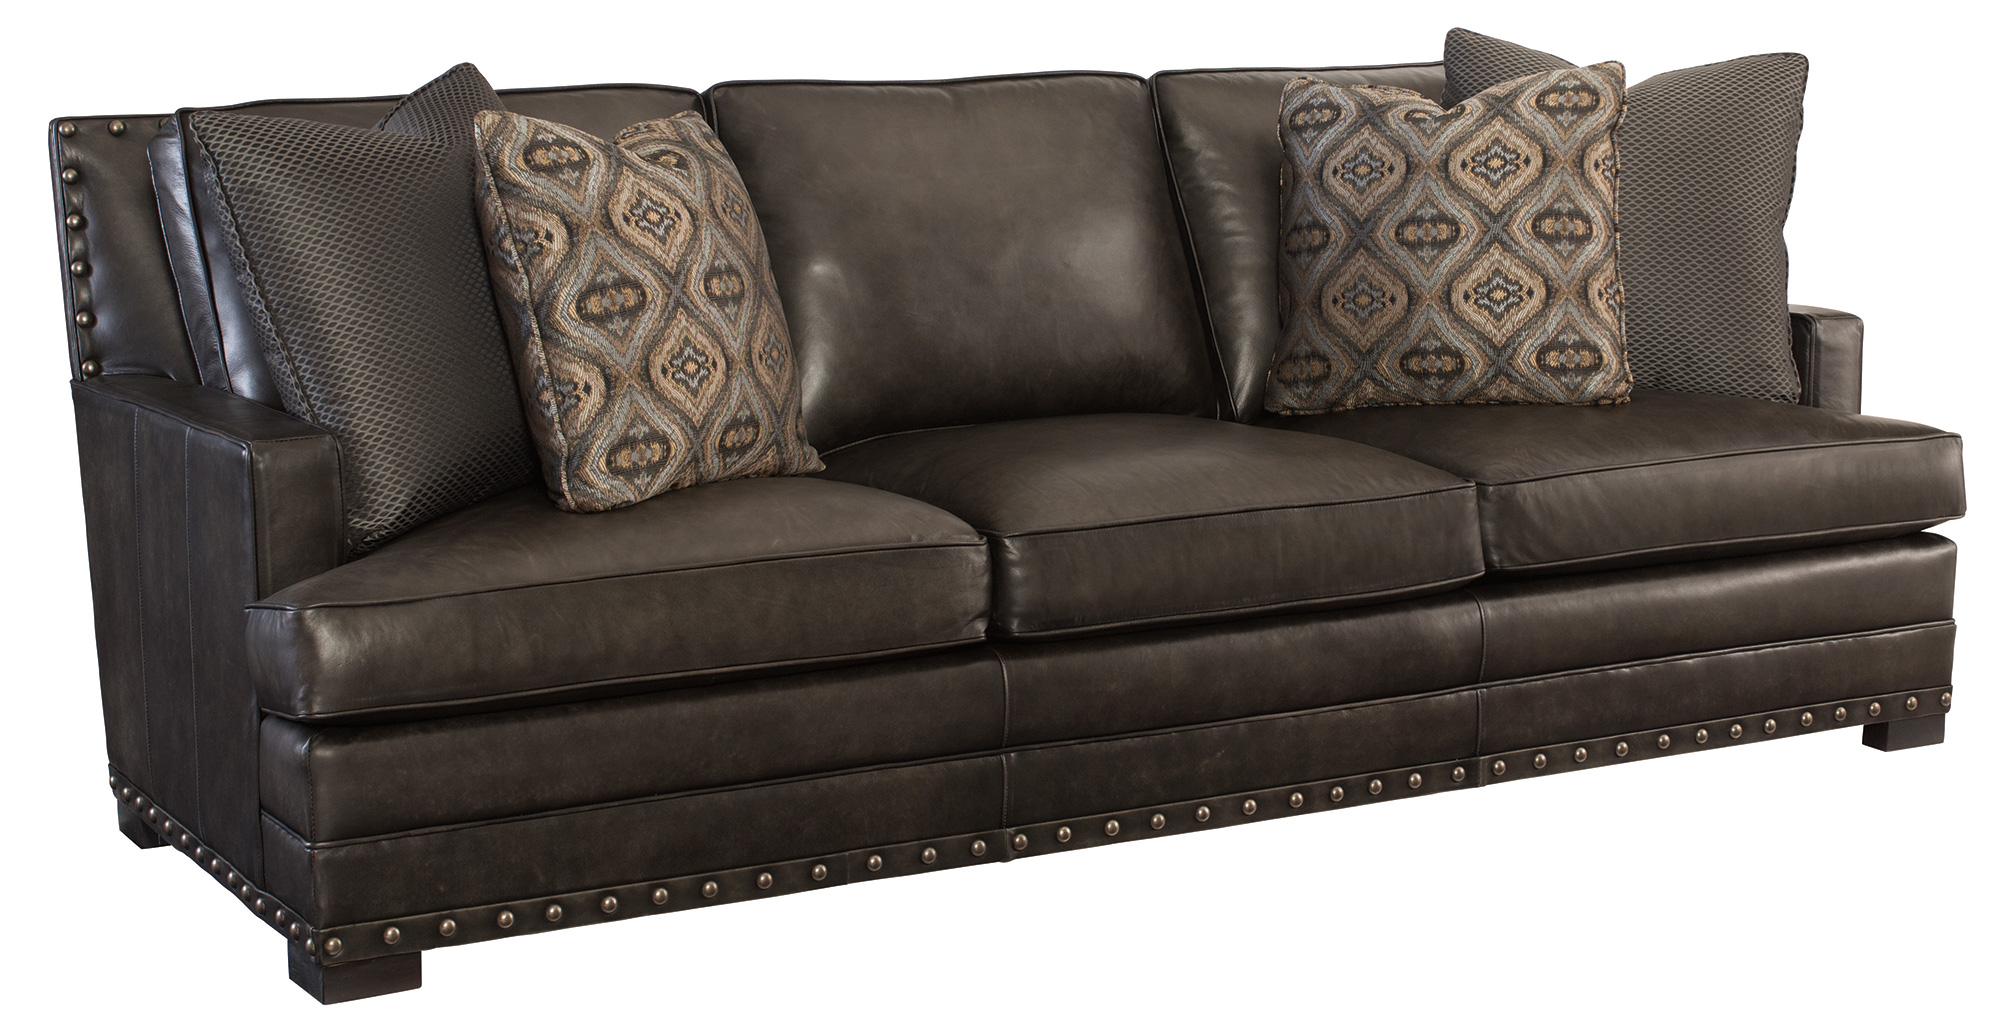 bernhardt leather sofa Roselawnlutheran : 4067L0 from roselawnlutheran.org size 2000 x 1035 jpeg 527kB